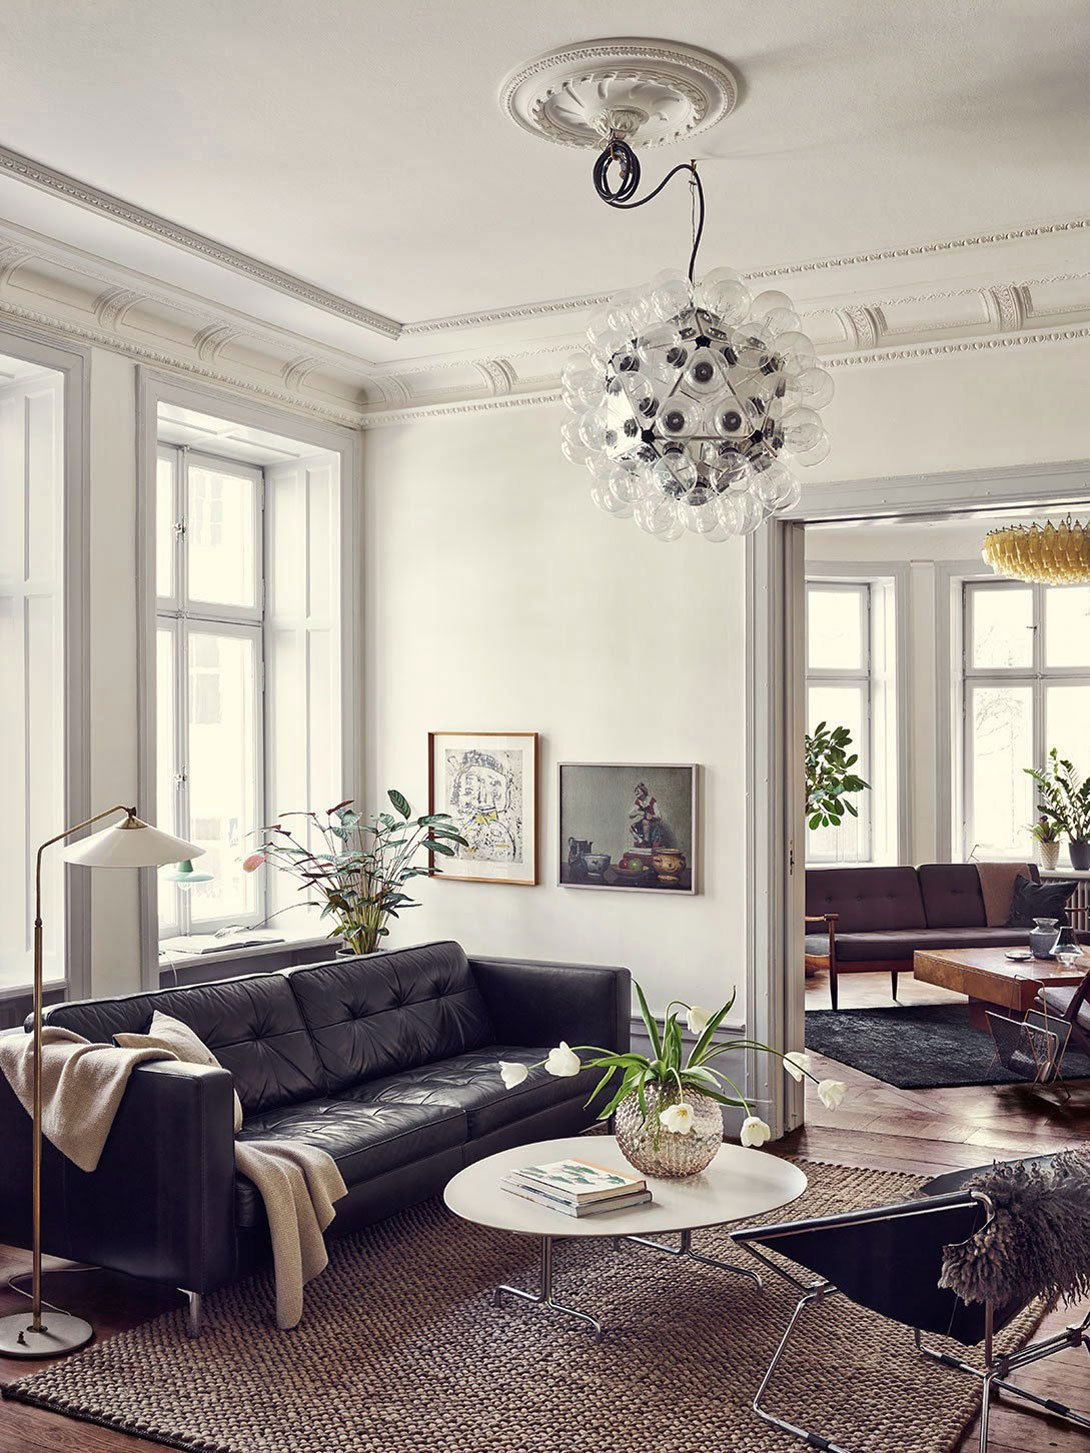 black leather sofas Why You Need These Amazing Black Leather Sofas In Your Home Why You Need These Amazing Black Leather Sofas In Your Home 5